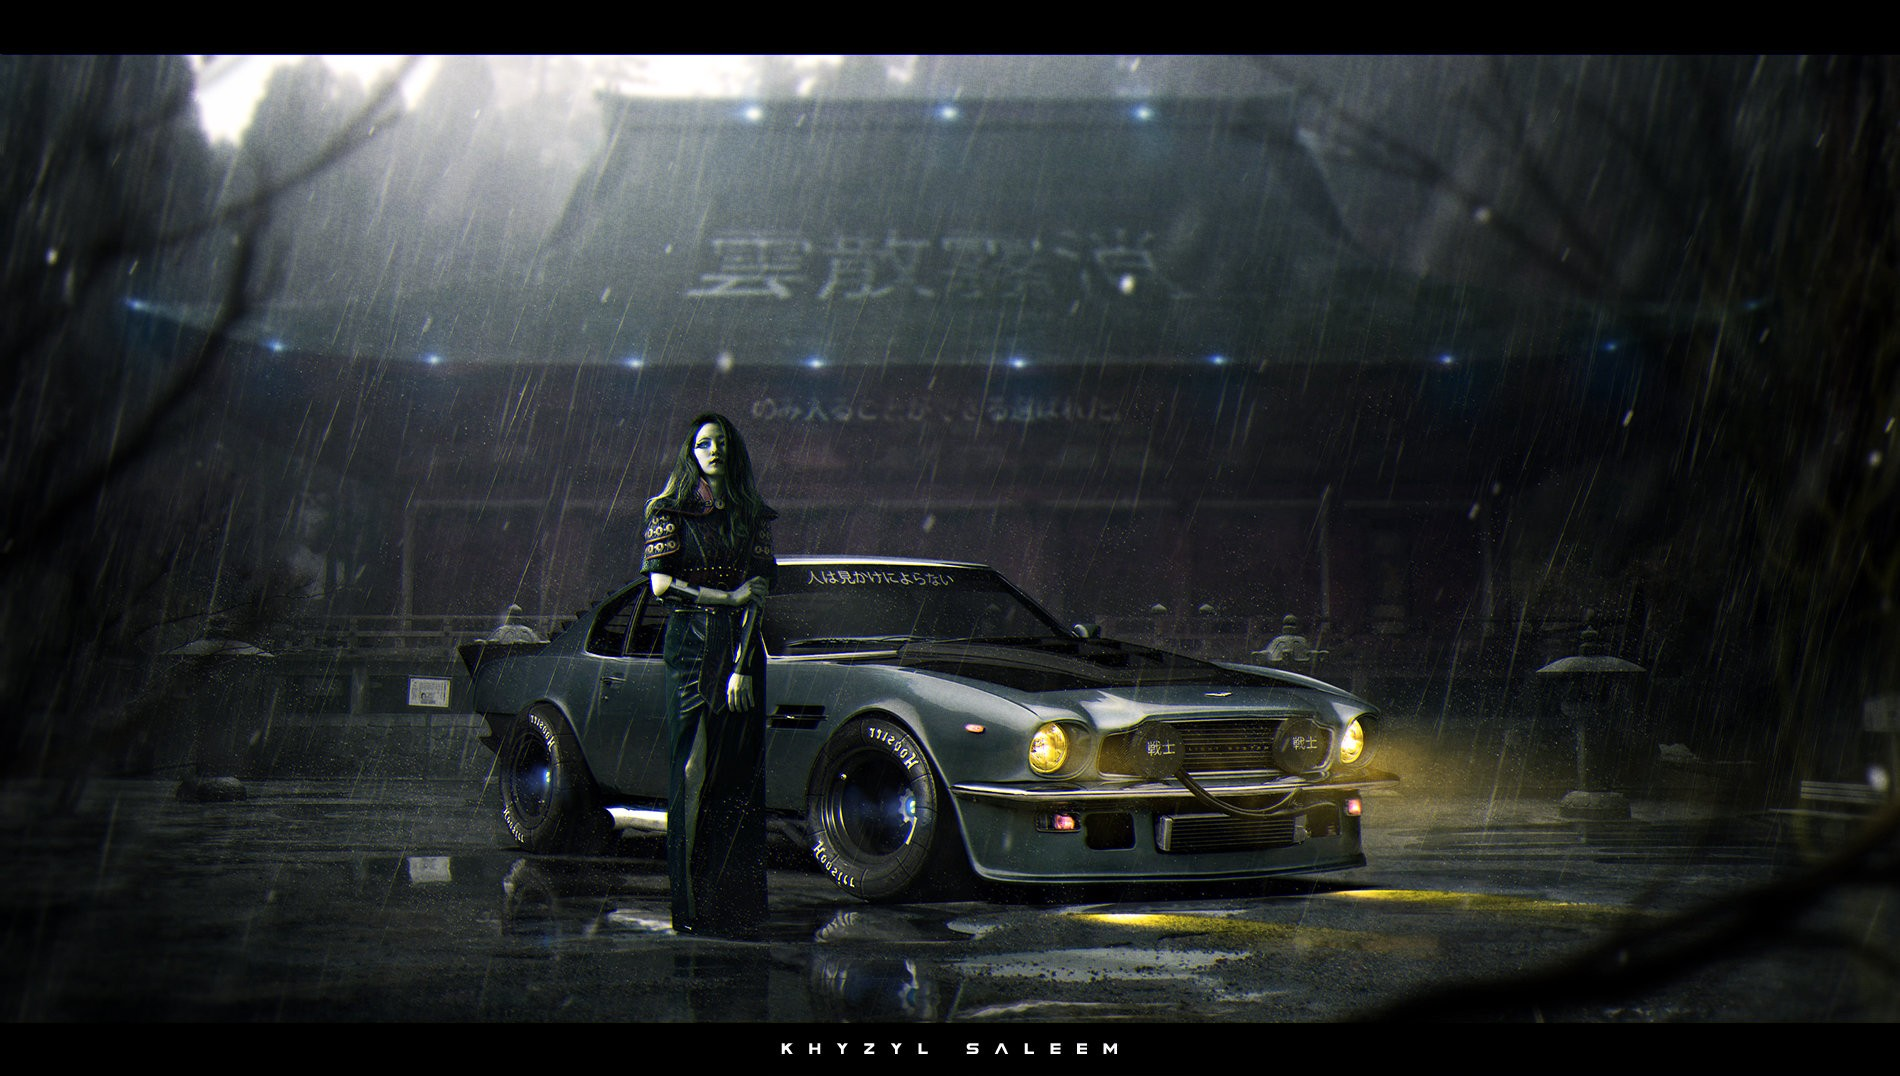 Classic Muscle Car Mobile Wallpaper Car Stance Khyzylsaleem Ford Mustang Futuristic Rain